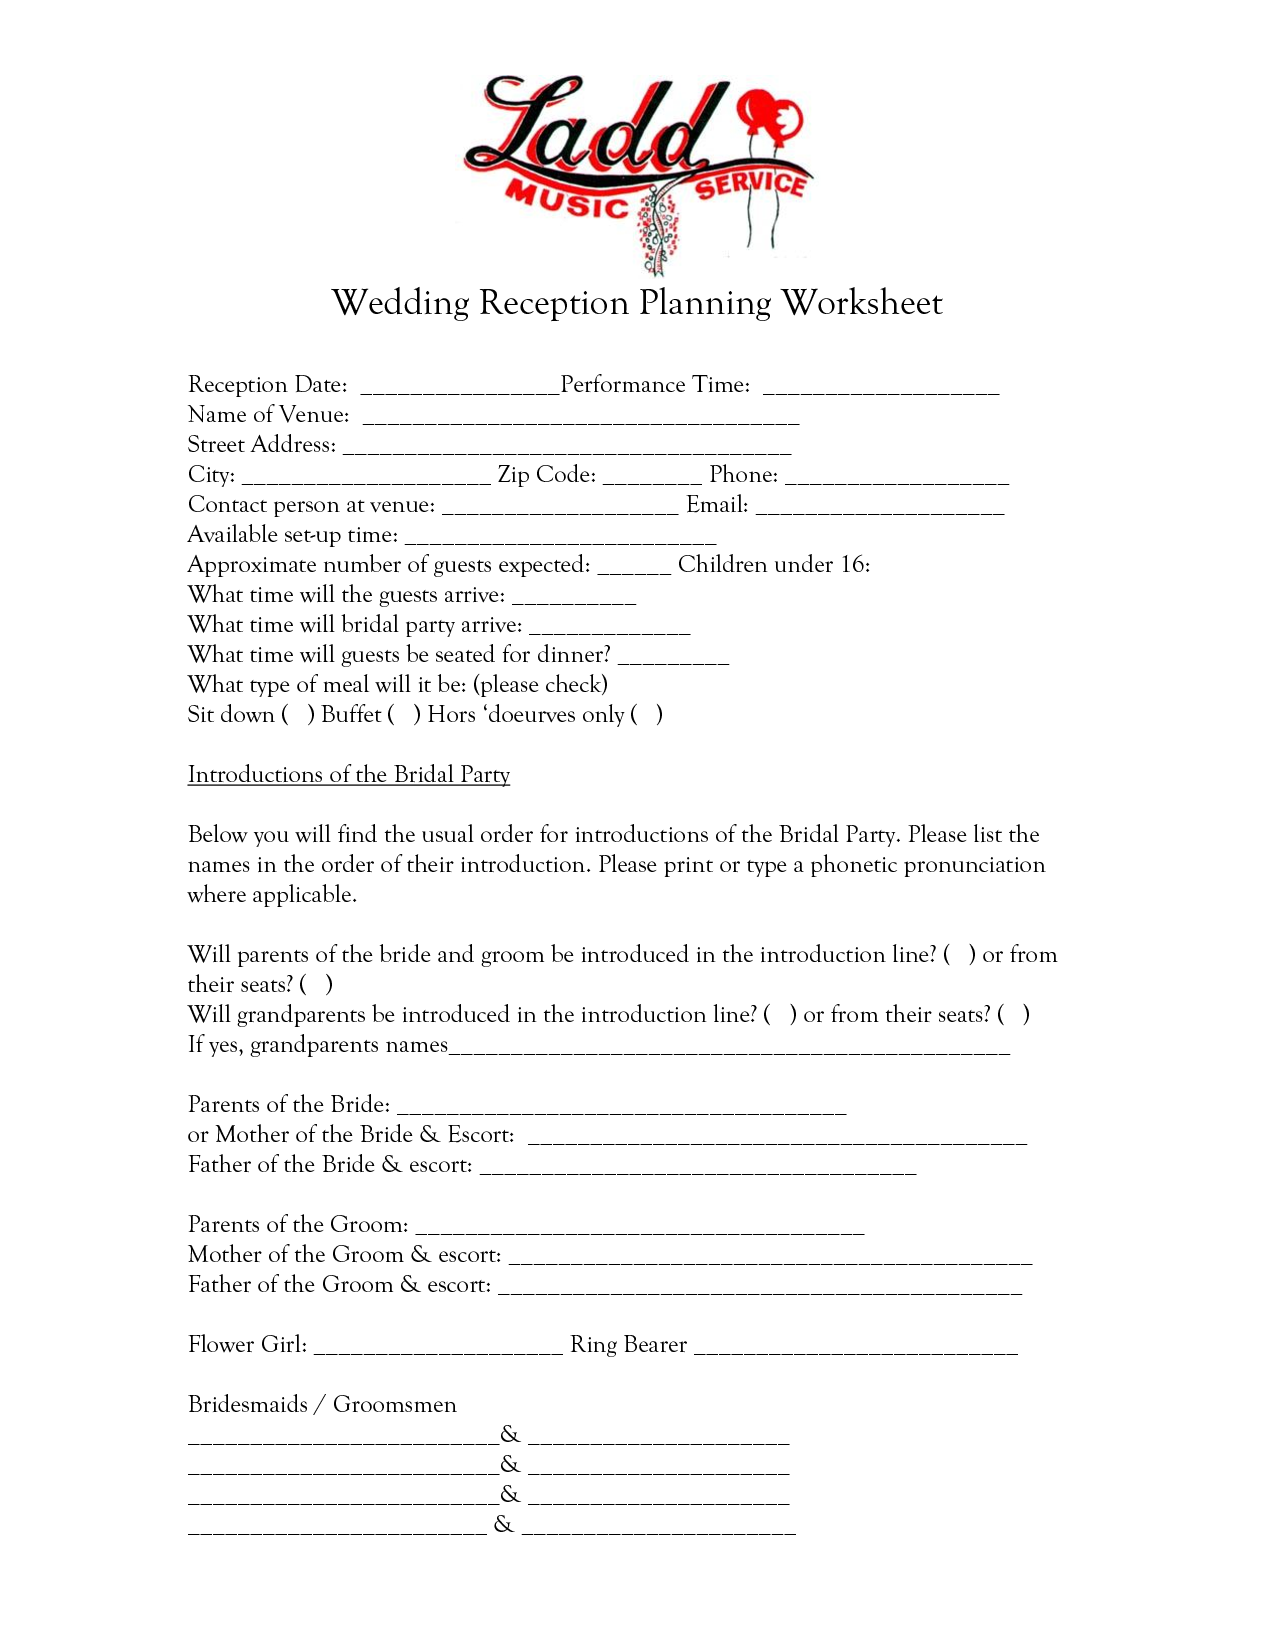 Dj For Wedding Reception Contract Template Accessoires Pour